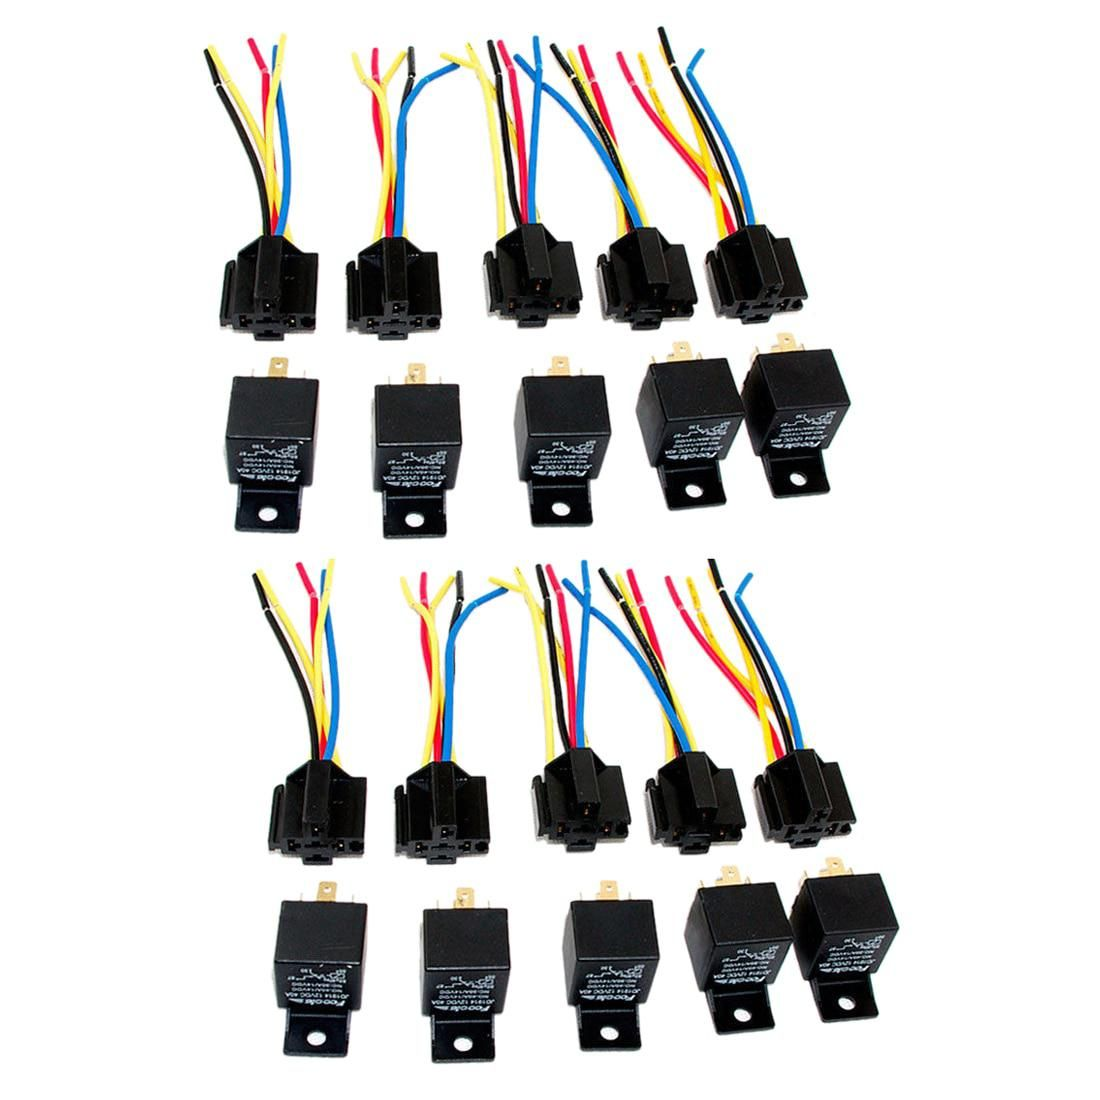 12 Volt Electric Wire Harness Wiring Library Conversion Diagram 1939 Chevy Lot10 New 40 Amp Spdt Automotive Relay With Wires Socket Yesterdays